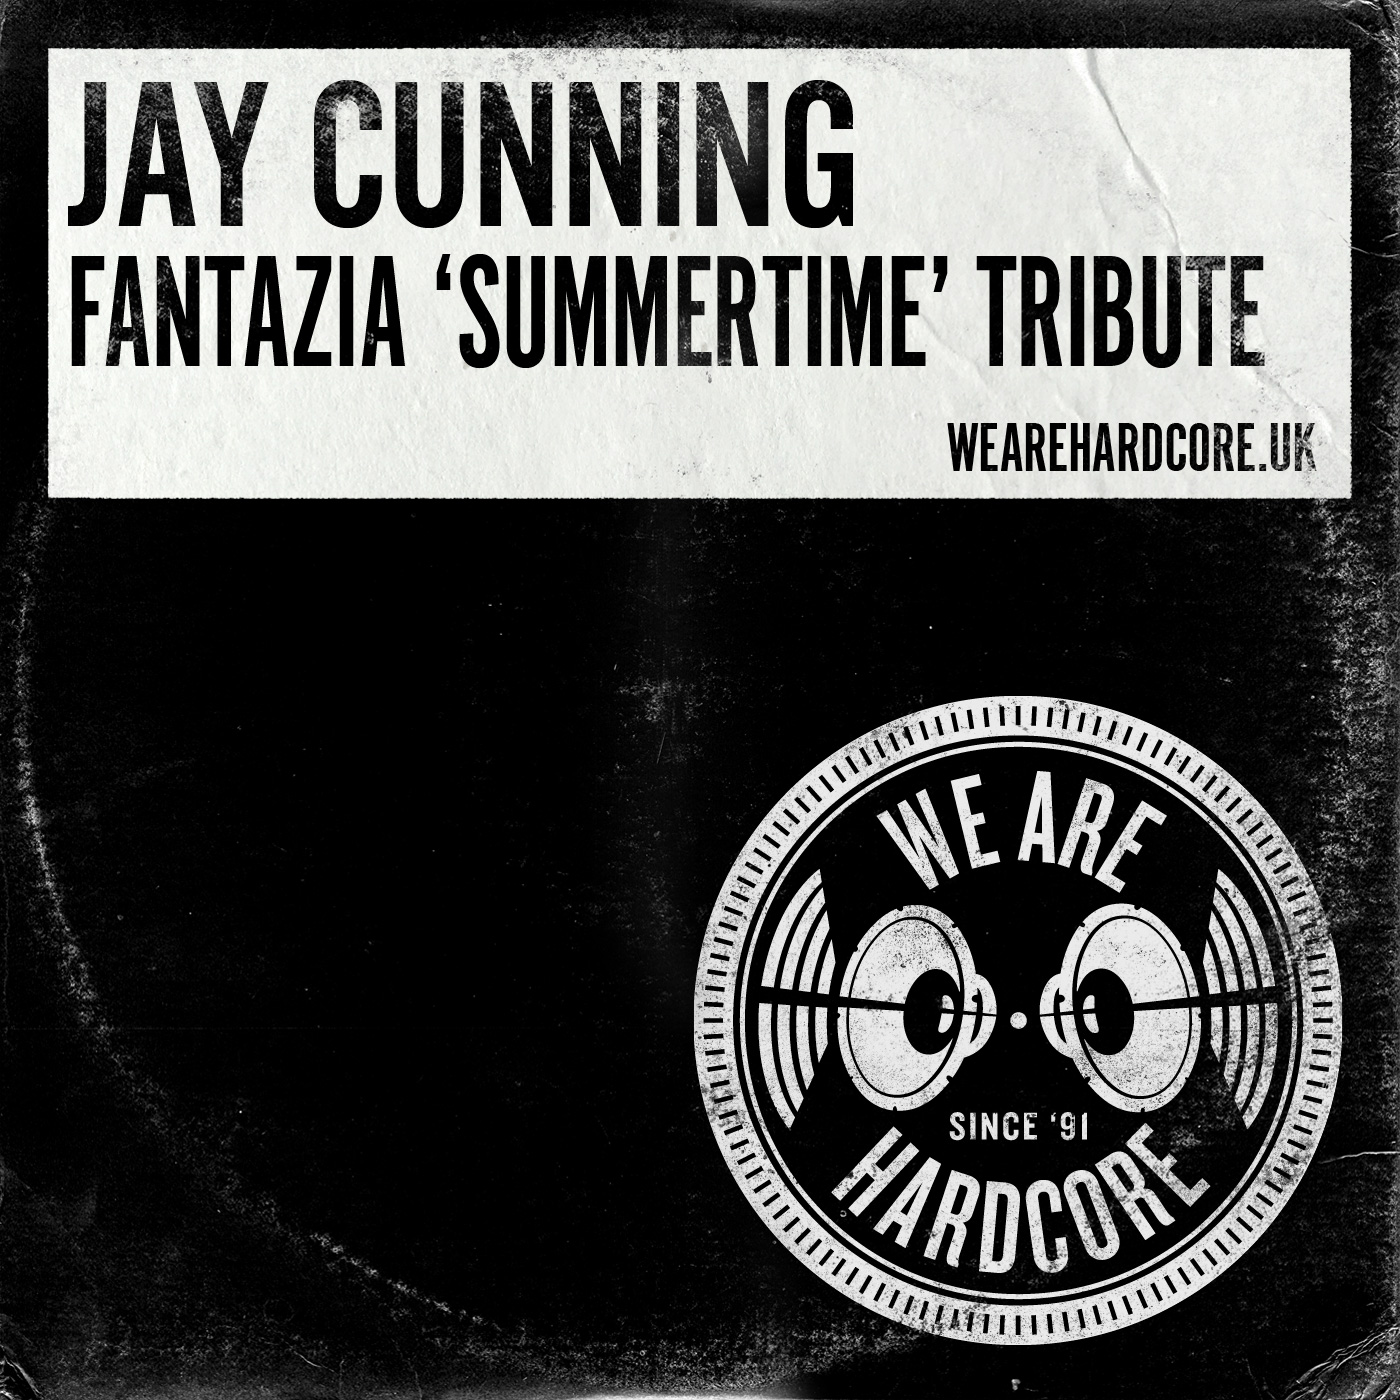 Fantazia 'Summertime' 1992 Tribute Set - Jay Cunning WE ARE HARDCORE